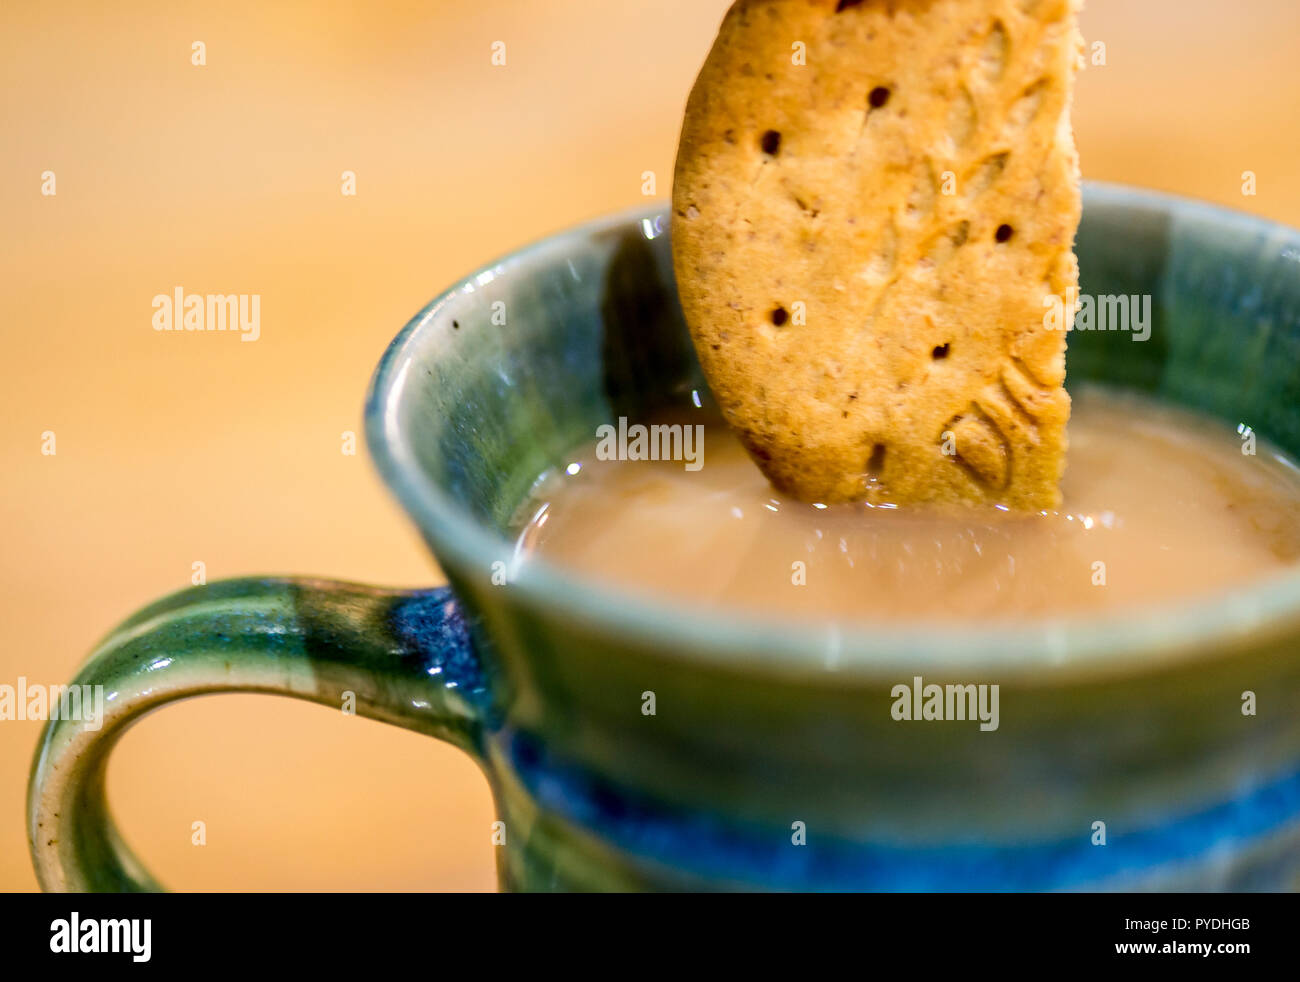 Digestive biscuit dipped in a cup of tea. - Stock Image